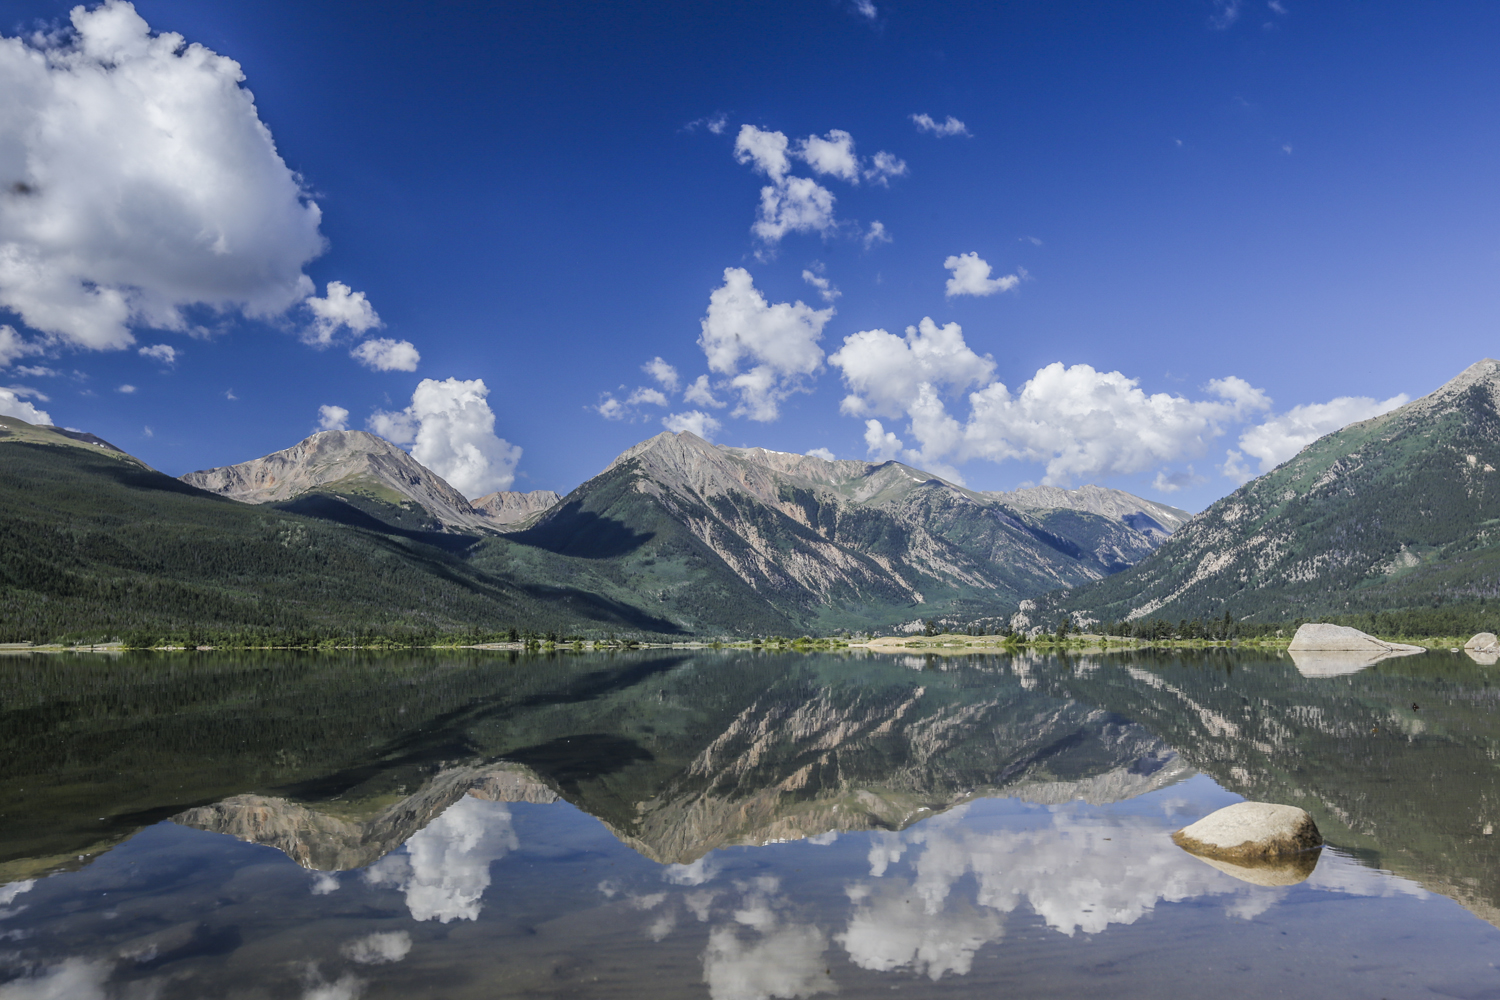 Twin Lakes  Canon 6D, Canon 16-35mm f/2.8L @35mm (iso200, f/11, 1/125s)